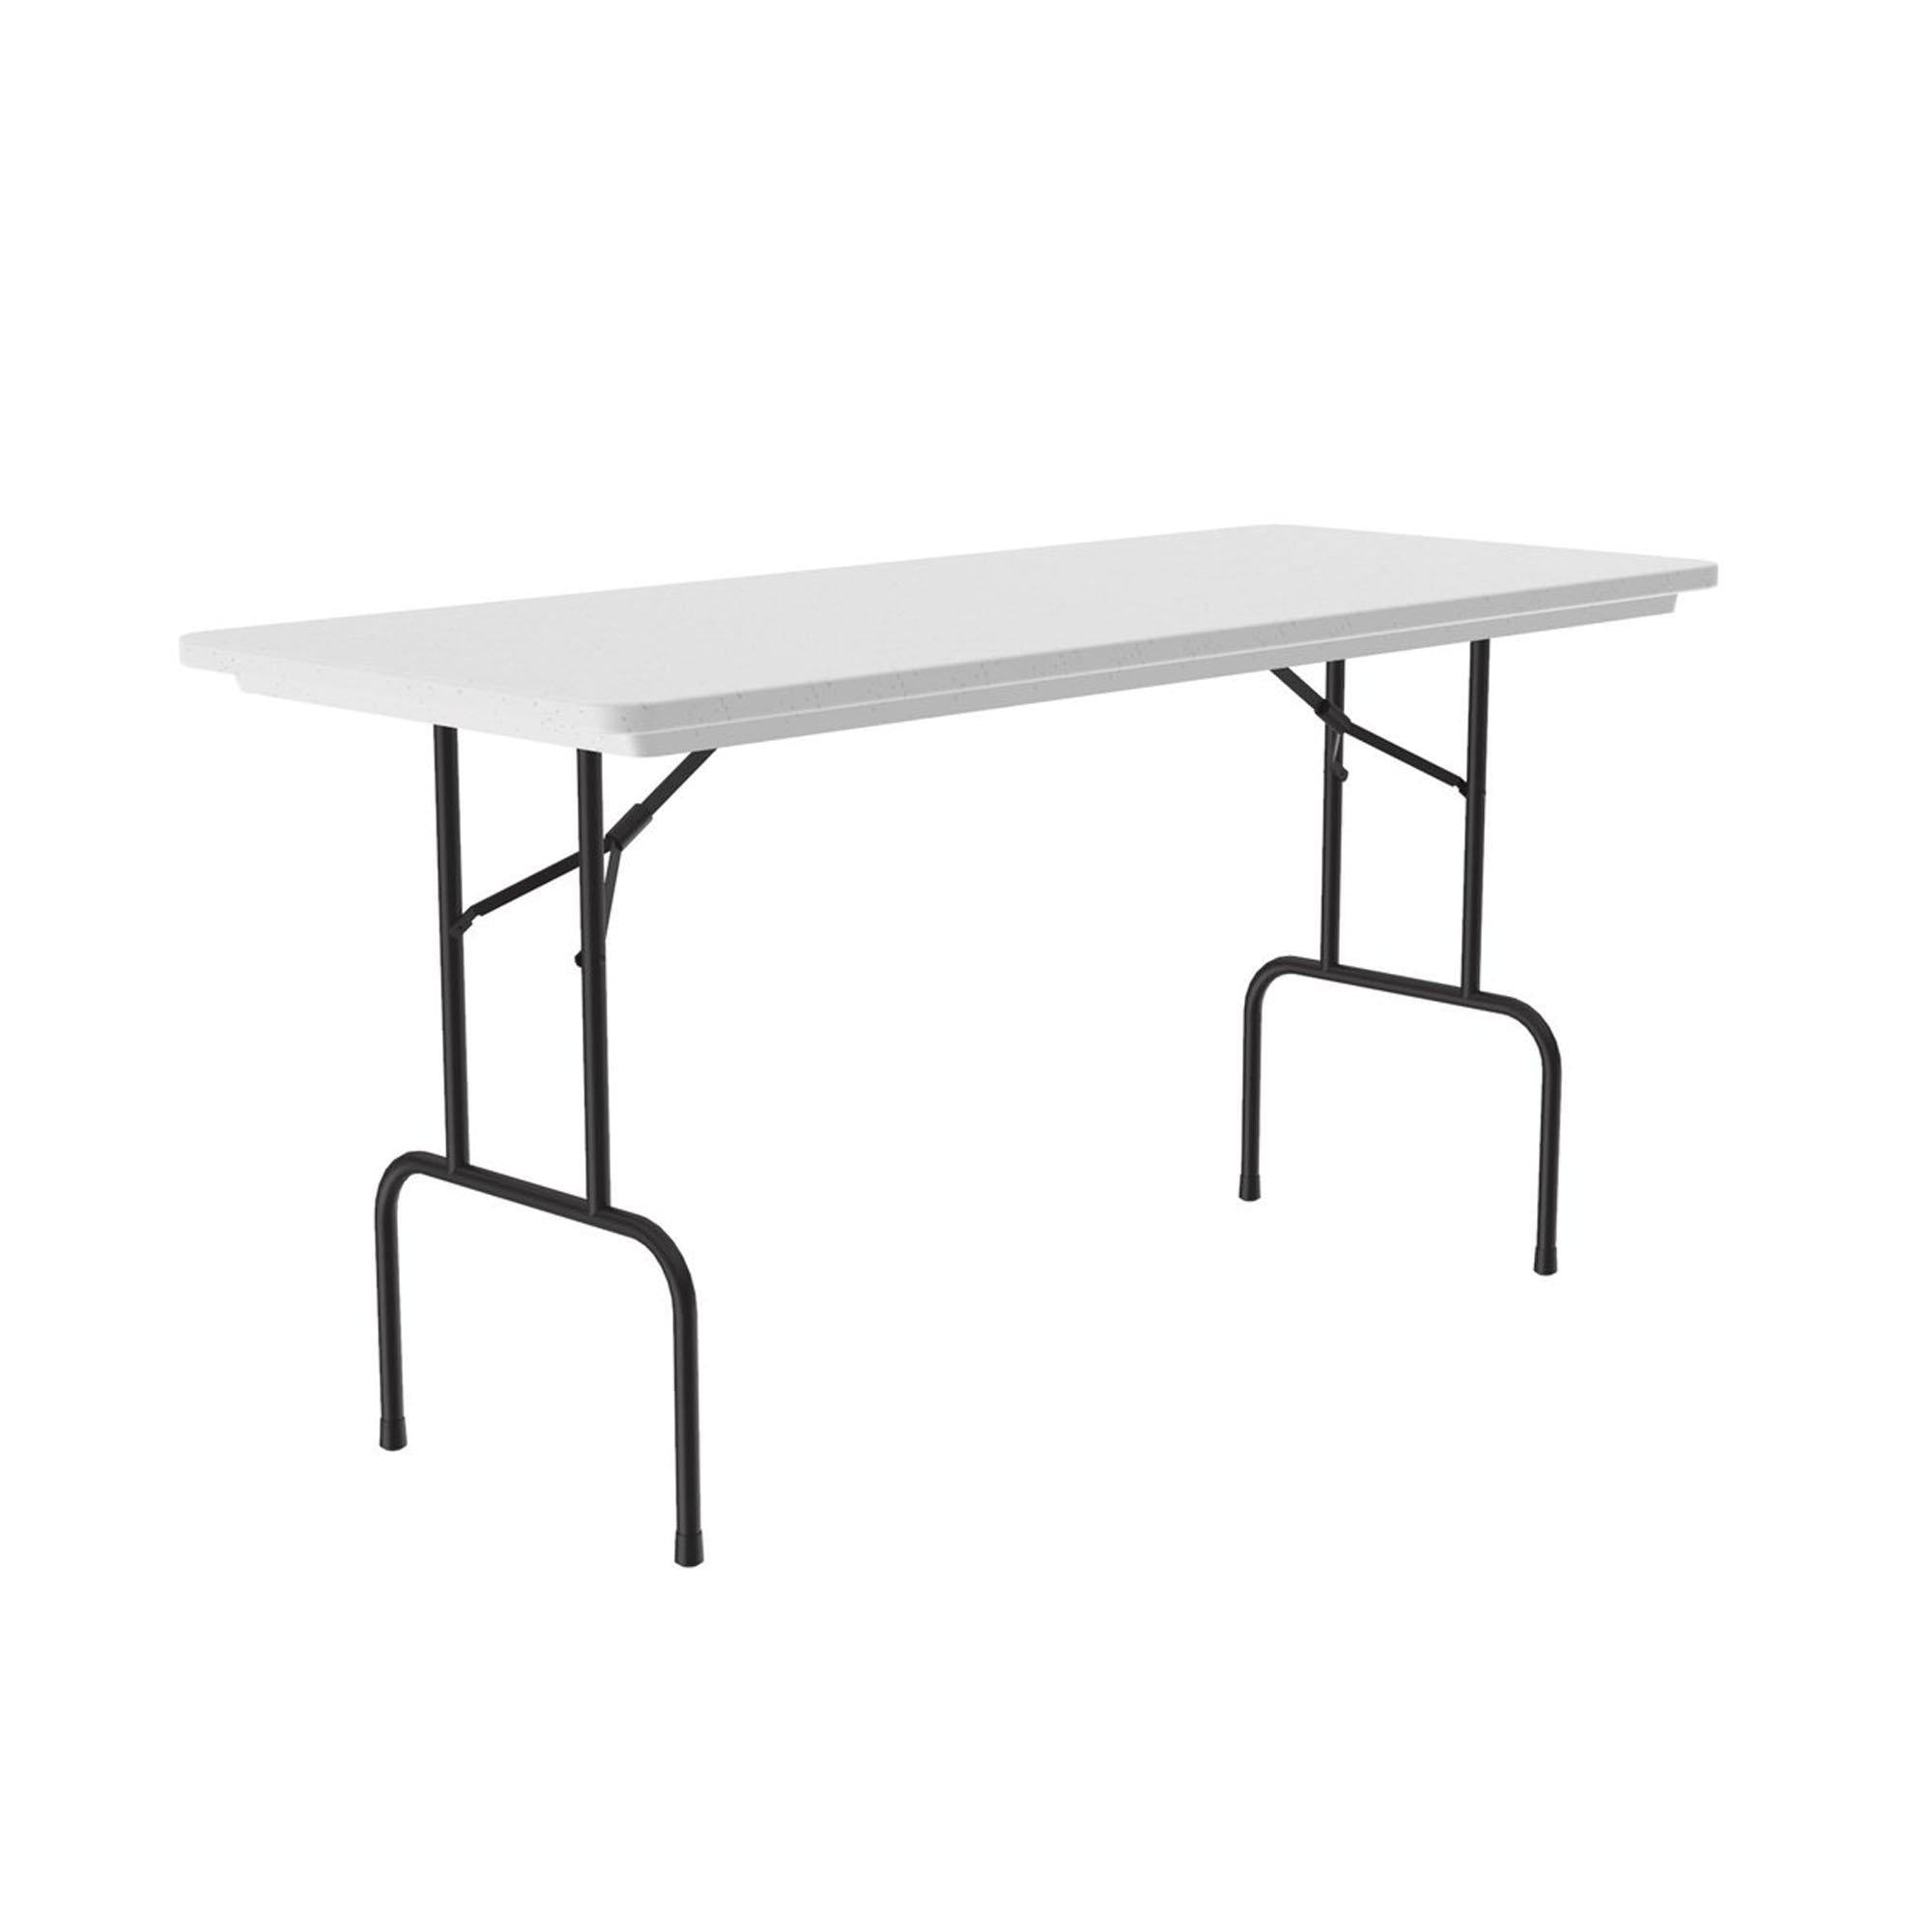 "Sanitation Station Antimicrobial Plastic Folding Table, 36"" Counter/Standing Height"